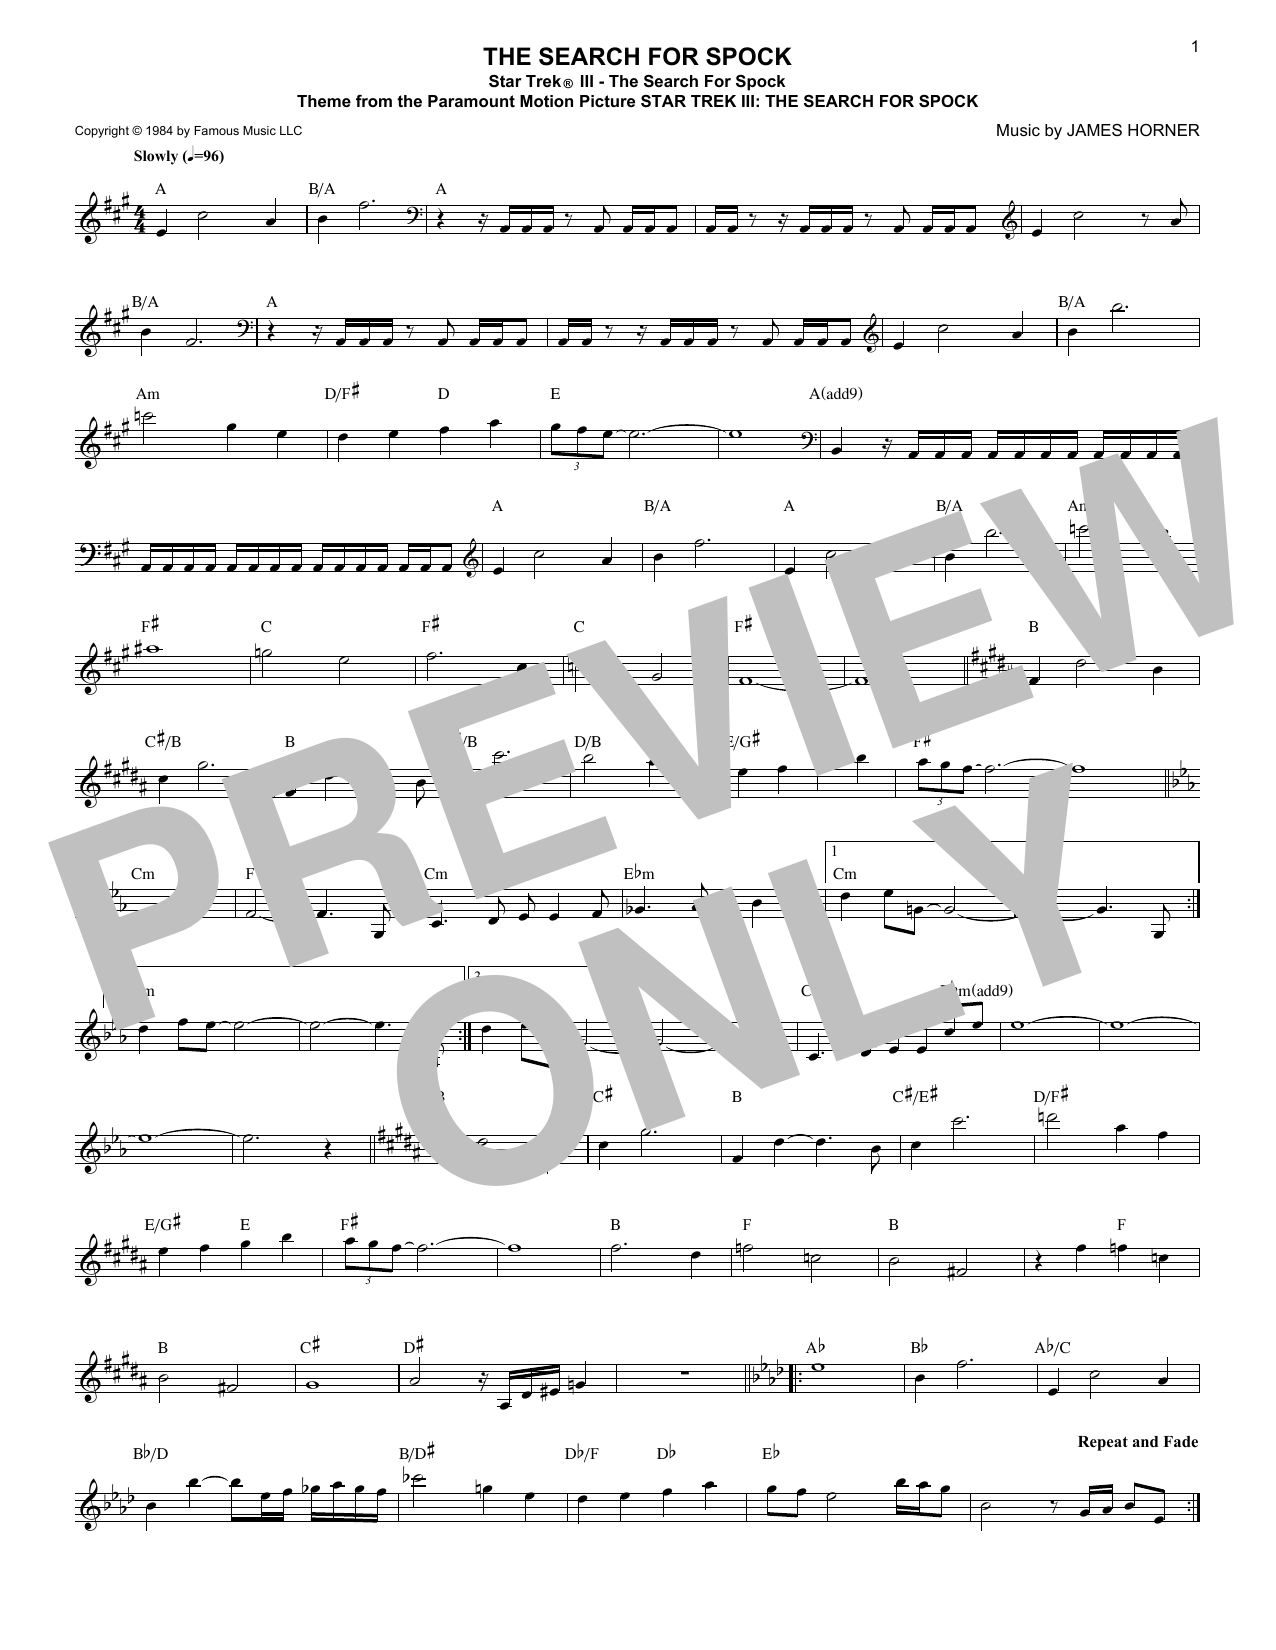 James Horner Star Trek III - The Search For Spock sheet music notes and chords. Download Printable PDF.